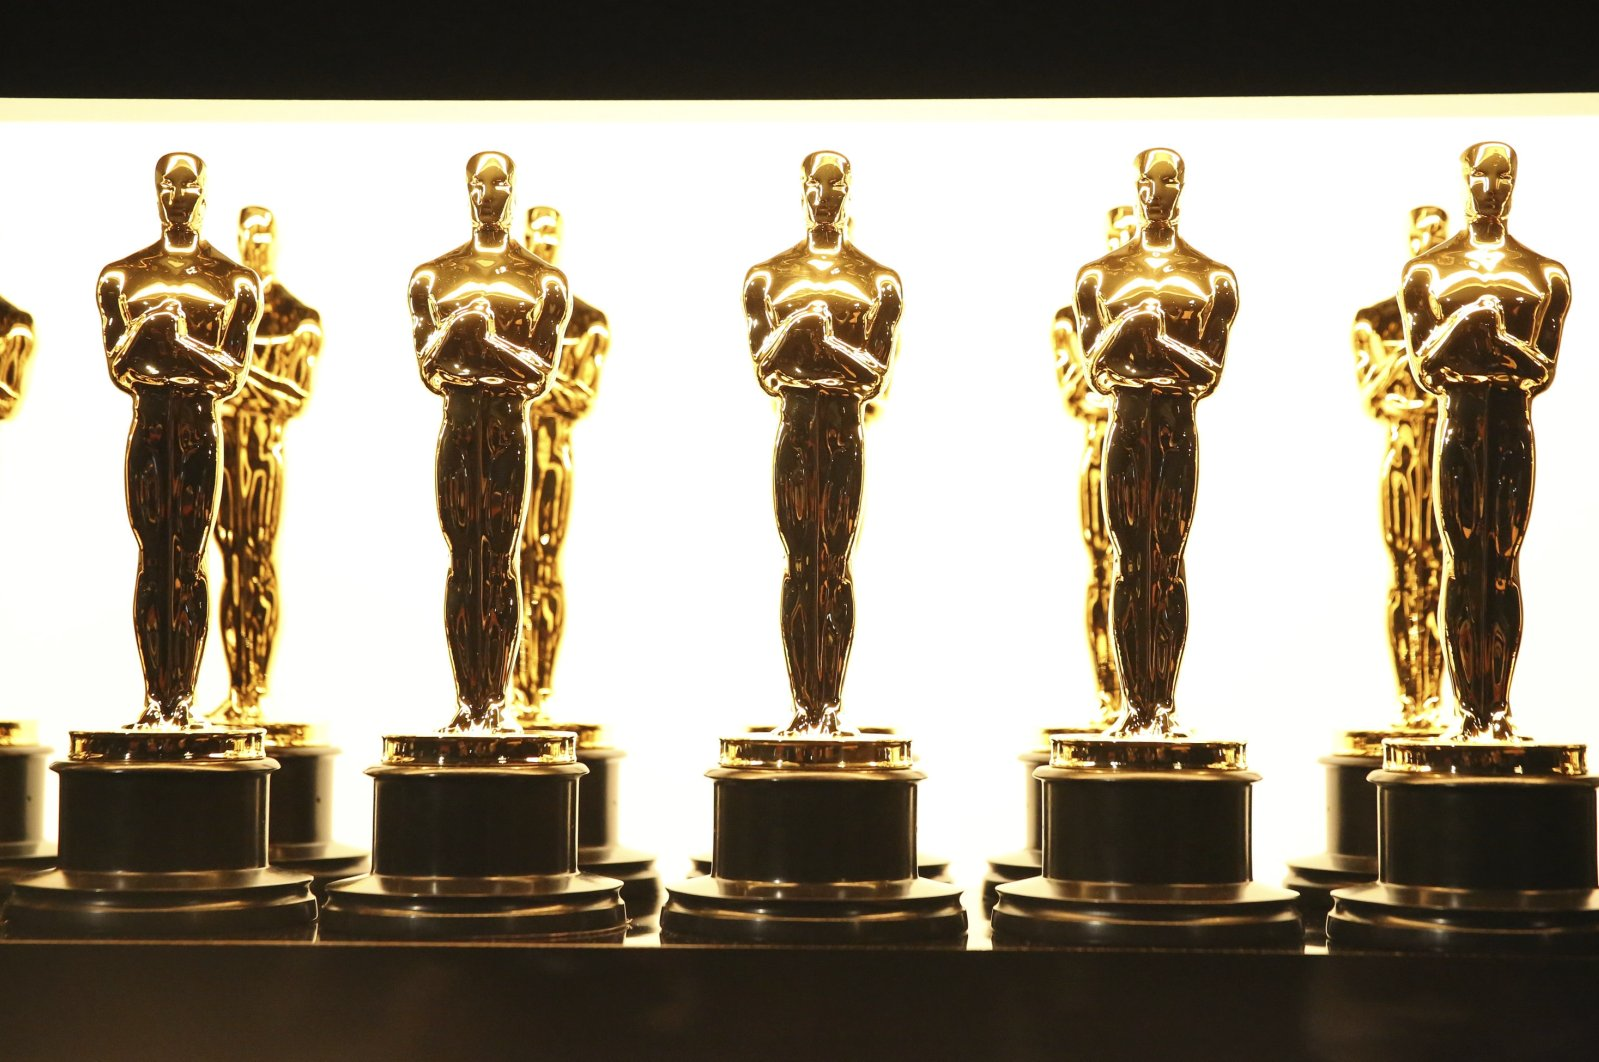 Oscar statuettes appear backstage at the Oscars in Los Angeles, U.S., Feb. 26, 2017. (AP Photo)